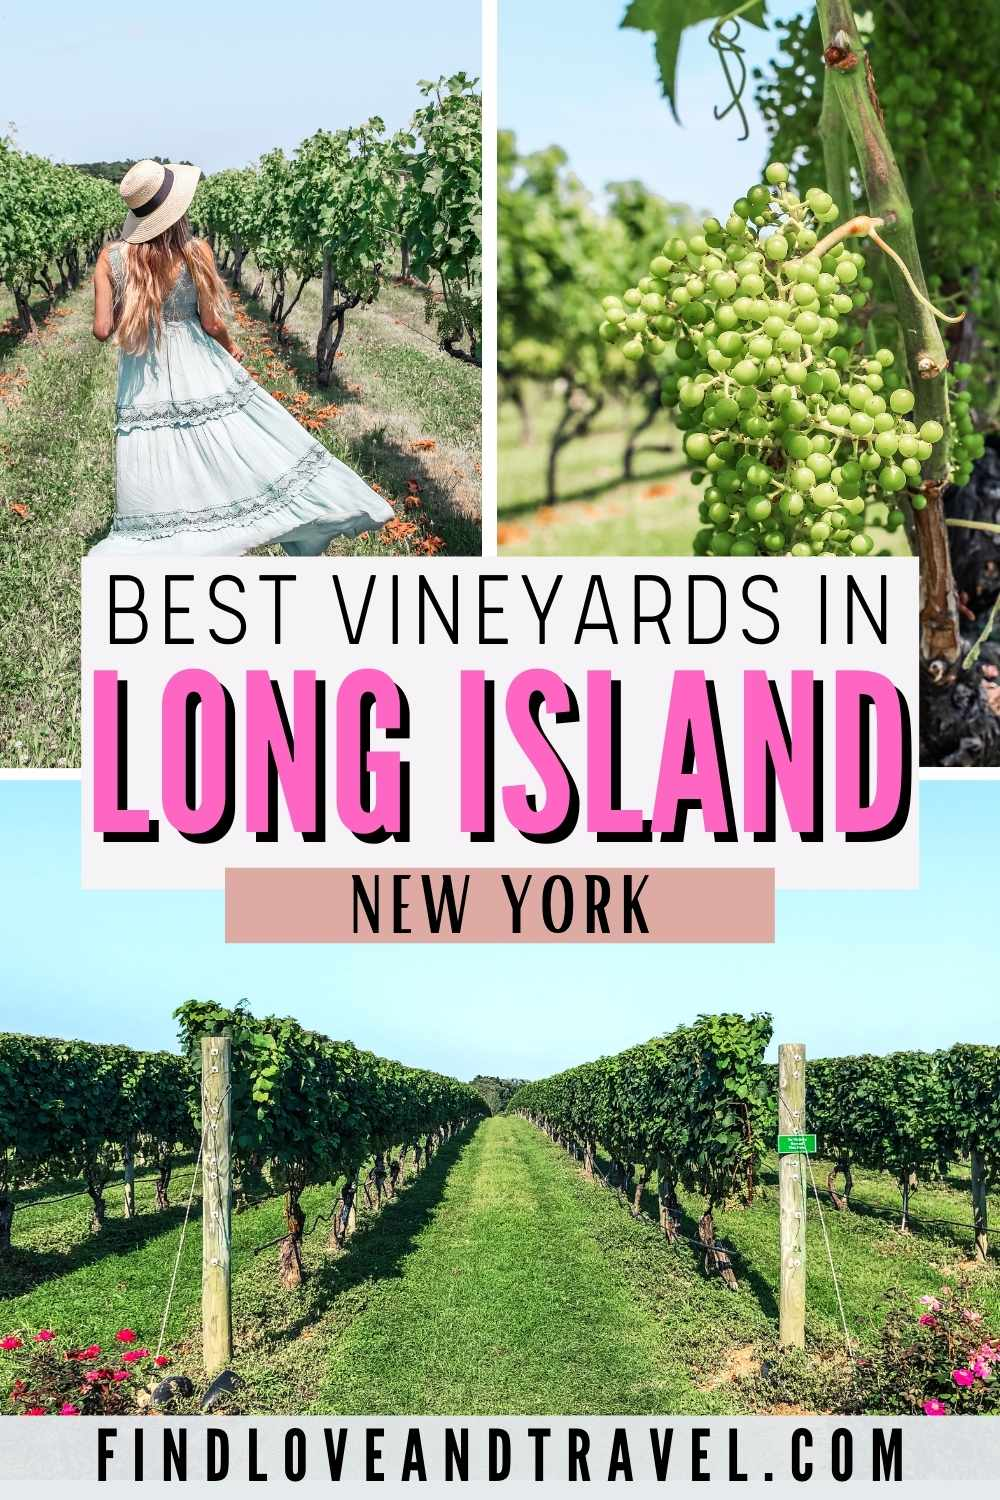 Best Vineyards and Wineries in and on Long Island, New York